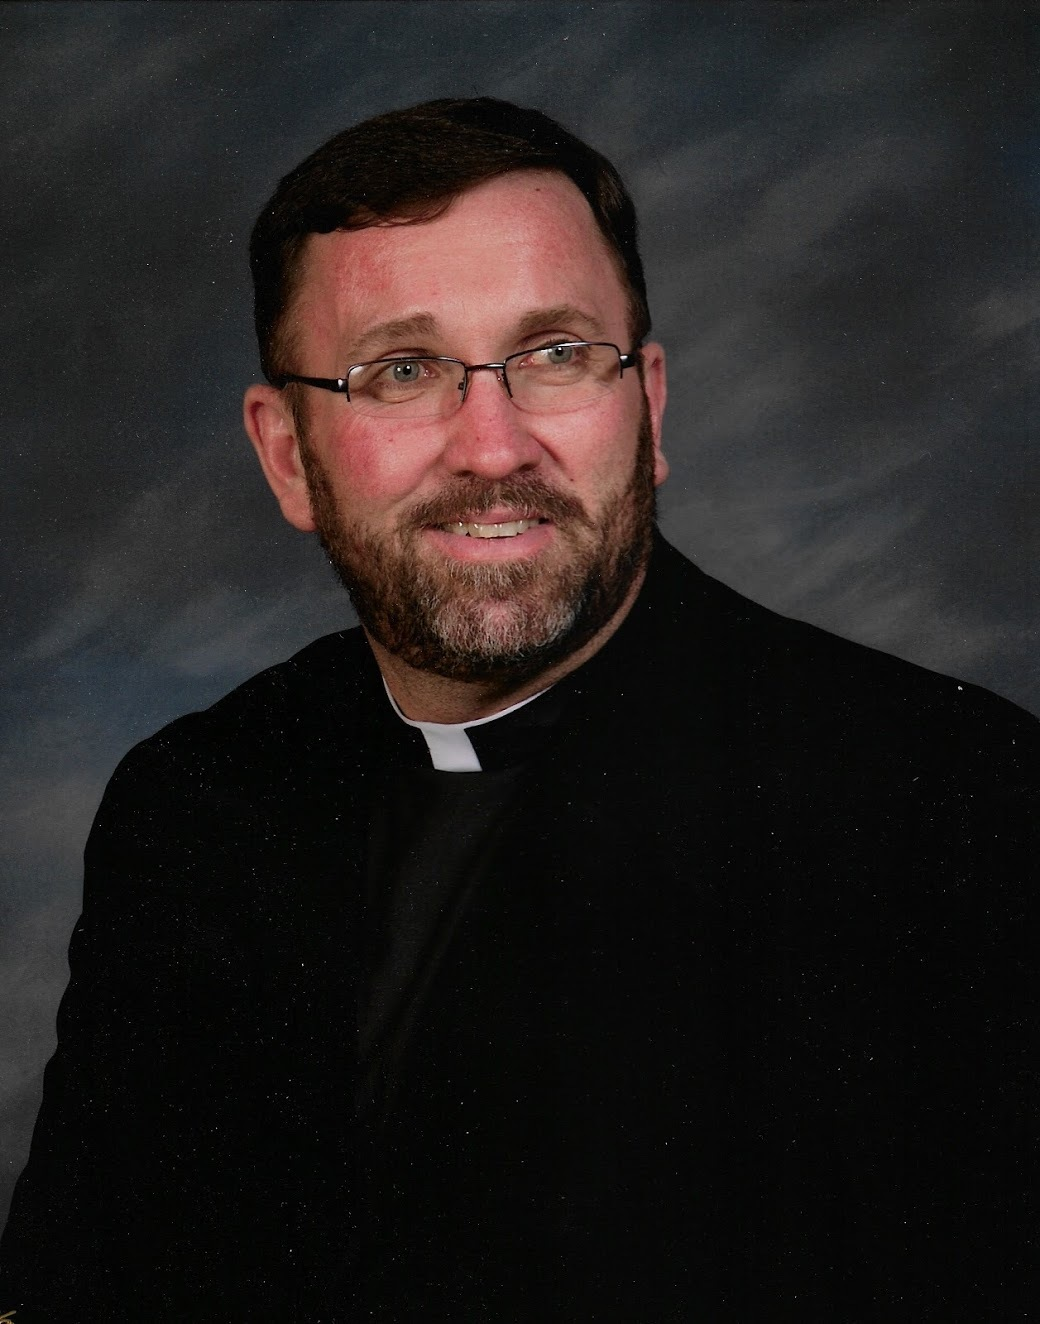 FATHER CHRIS M. WALSH